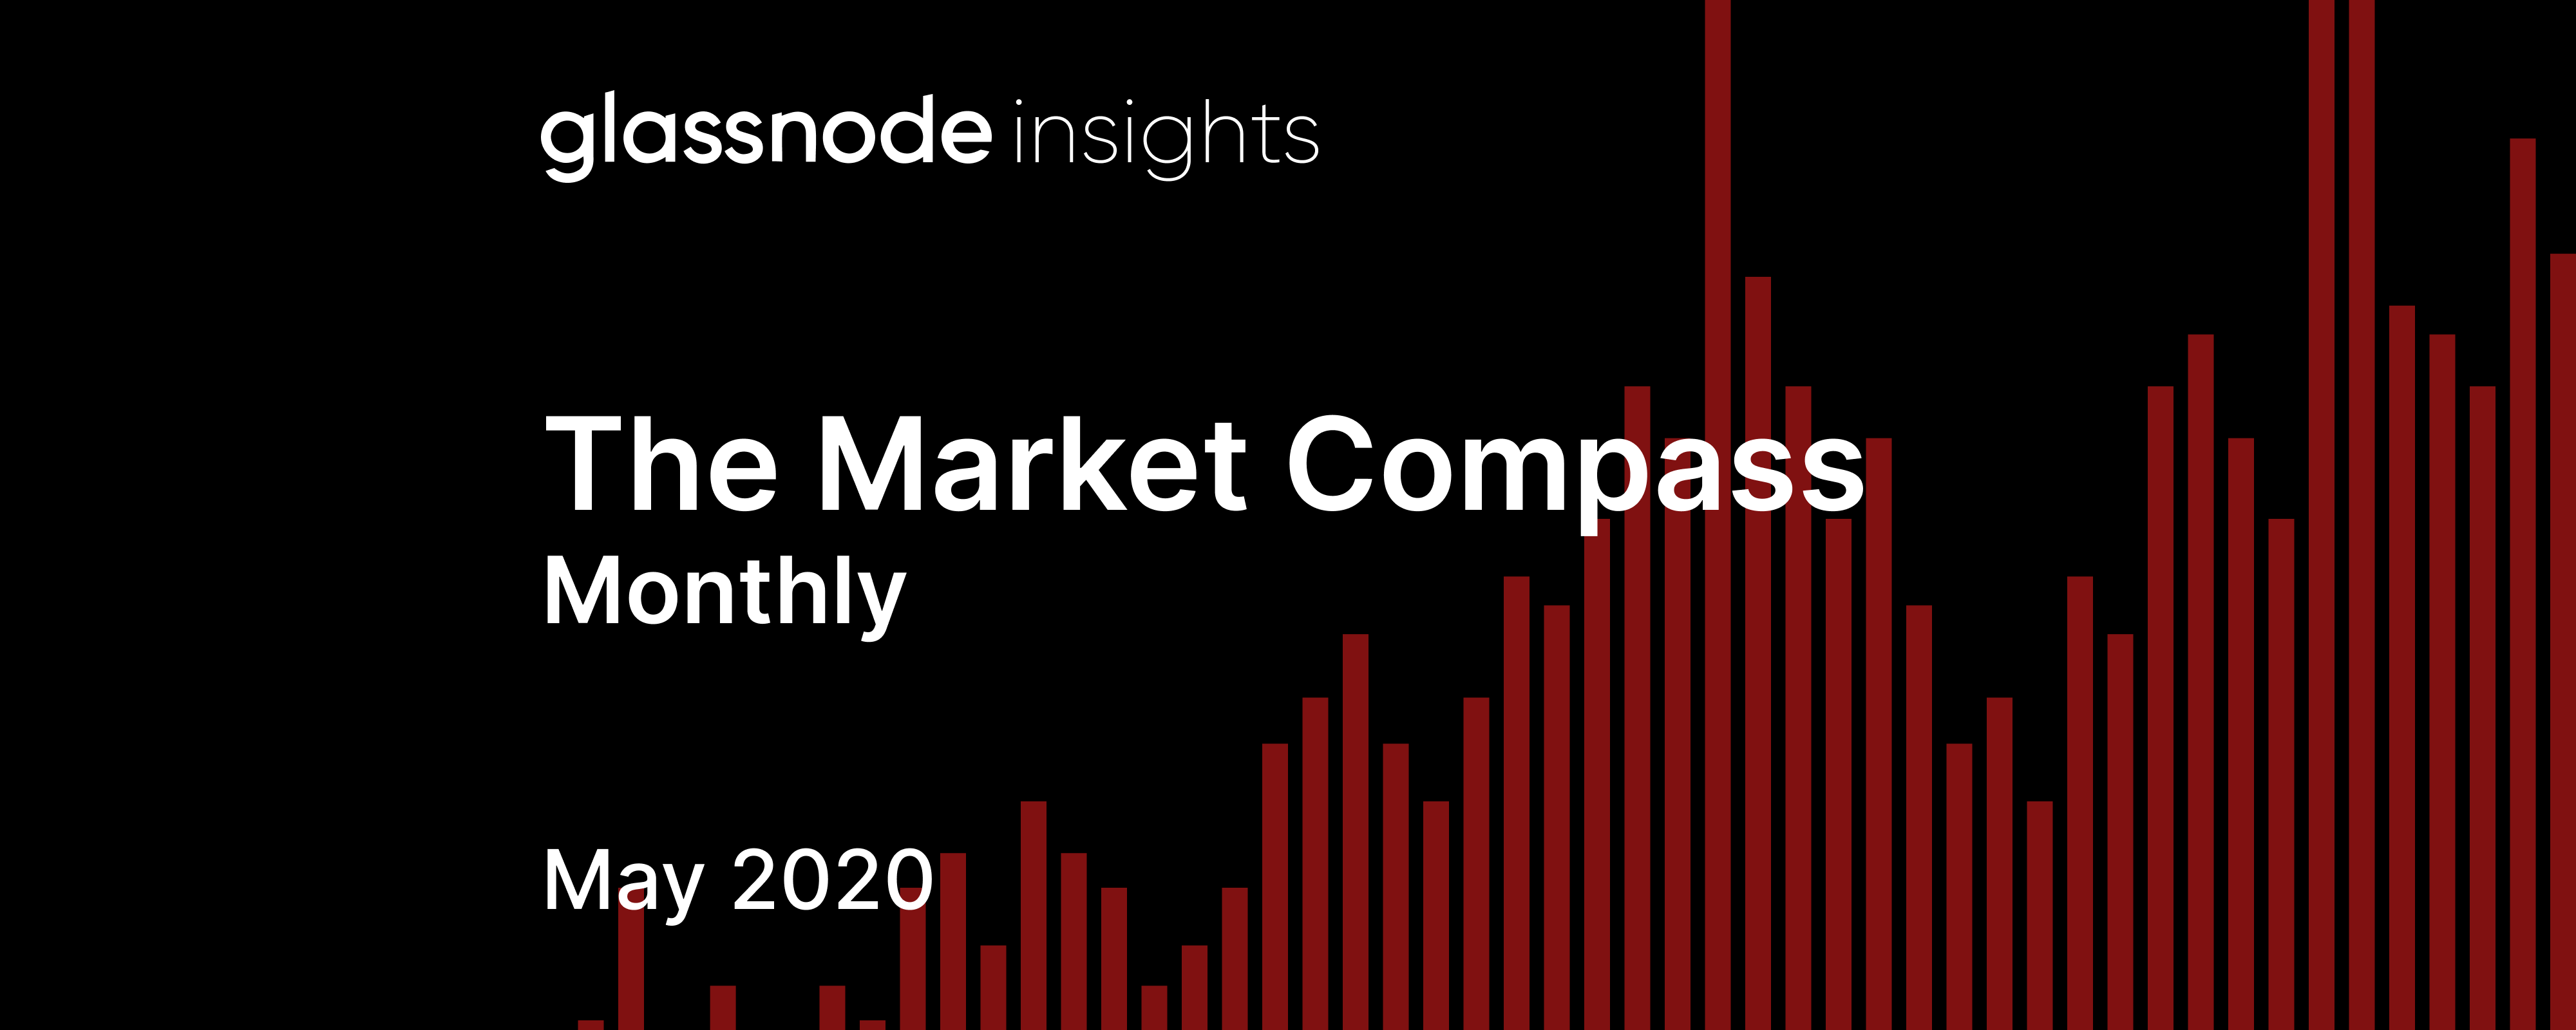 The Market Compass (May 2020)